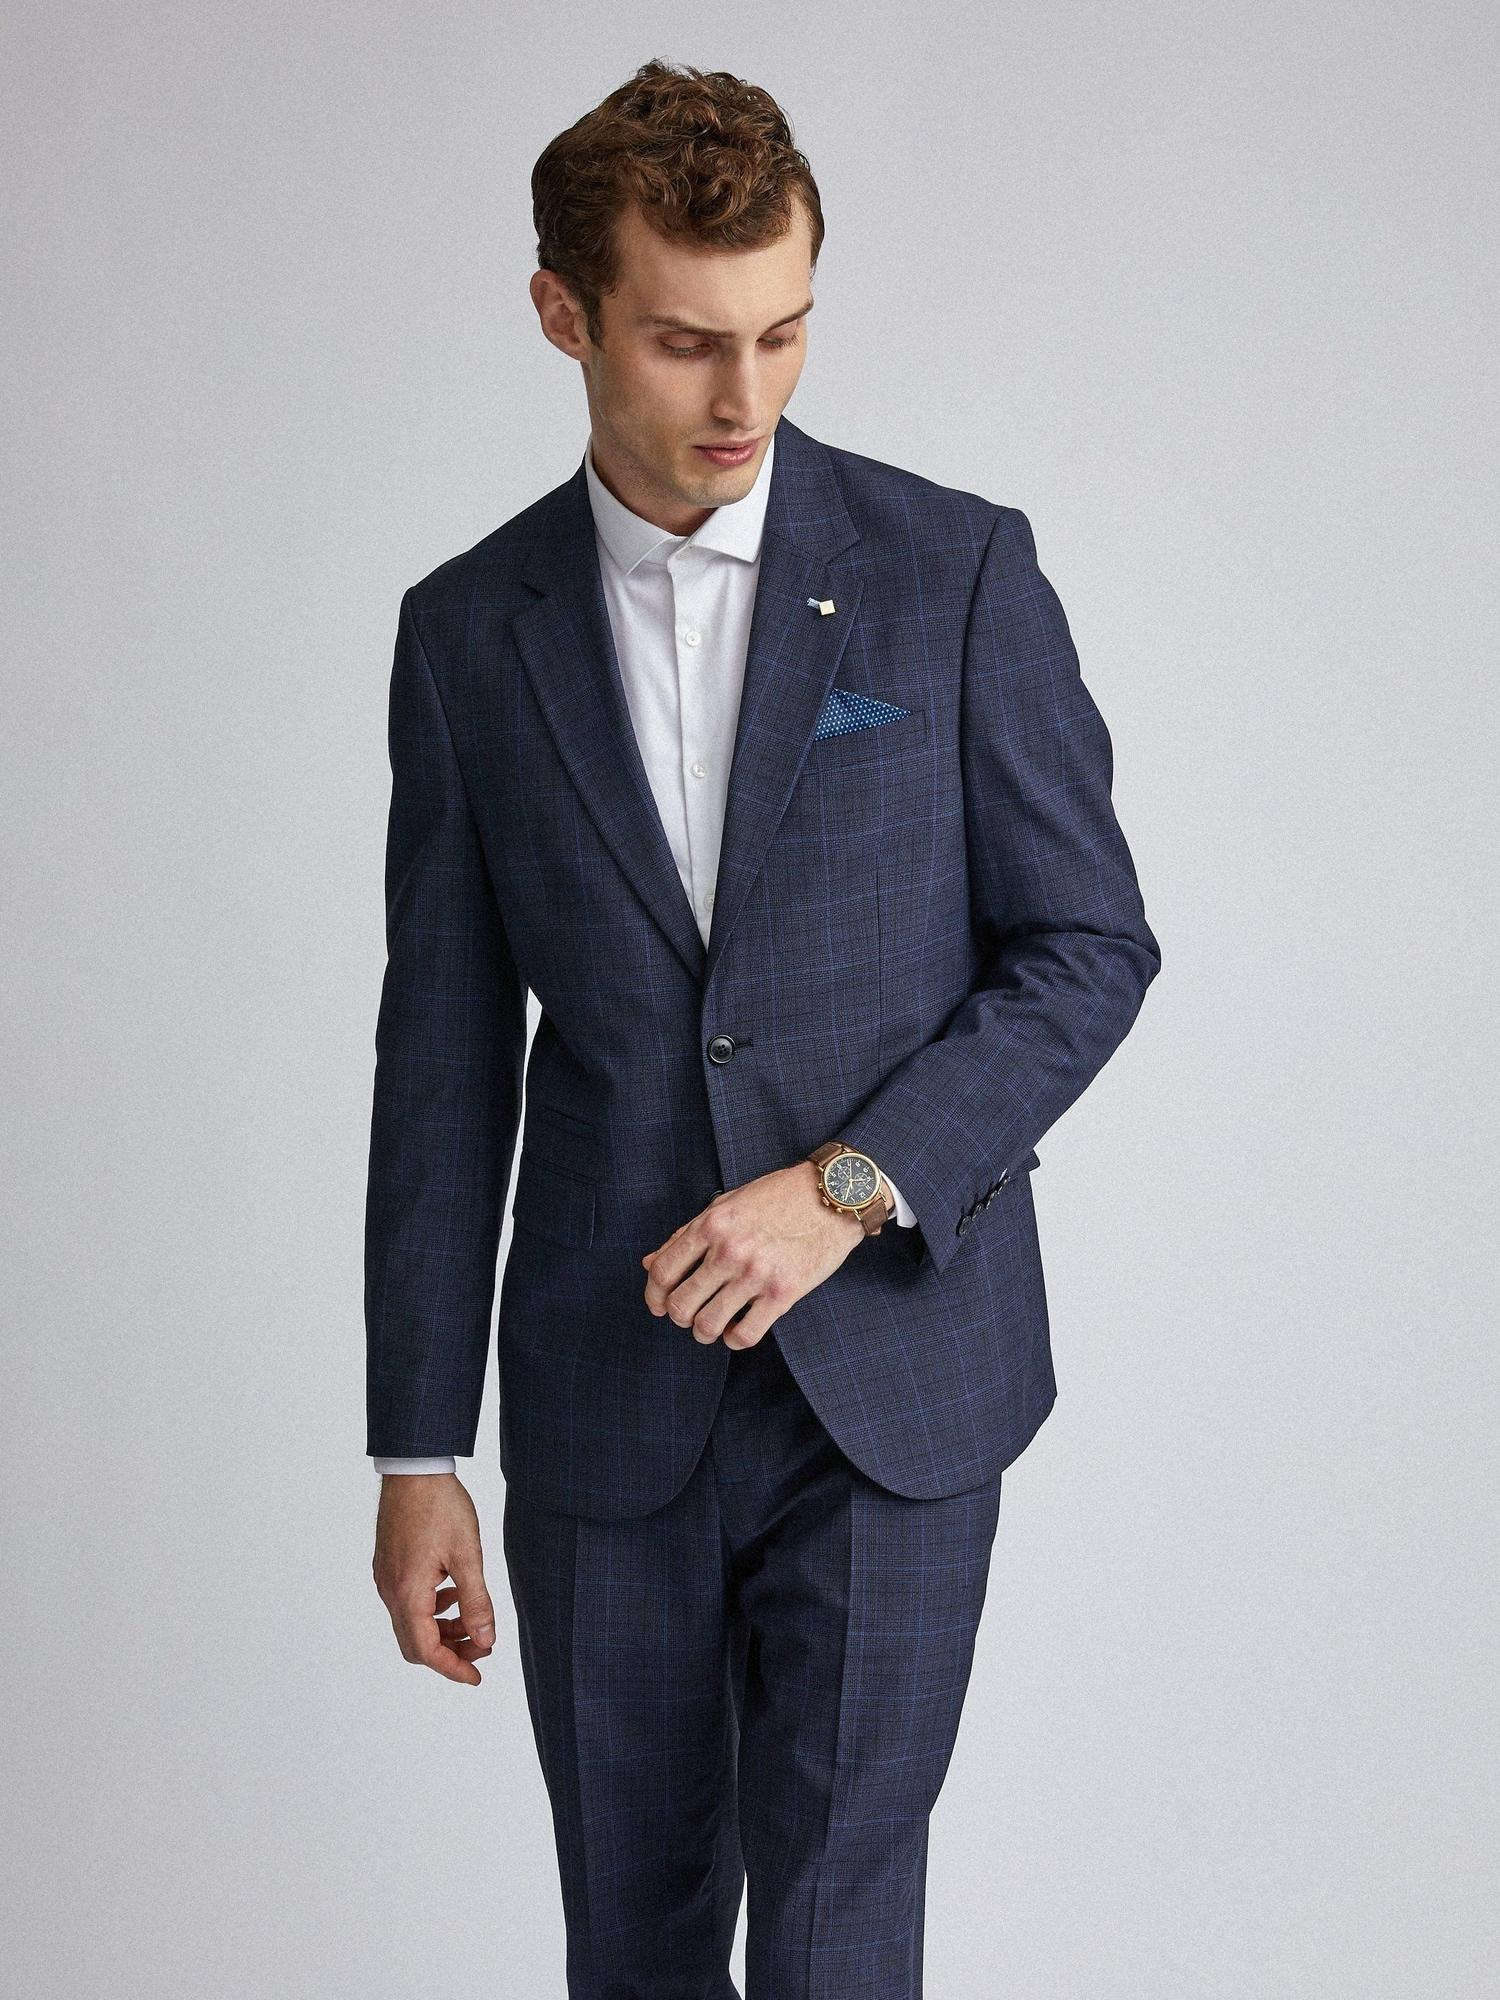 148 Navy Tonal Check Tailored Fit Suit Jacket image number 1